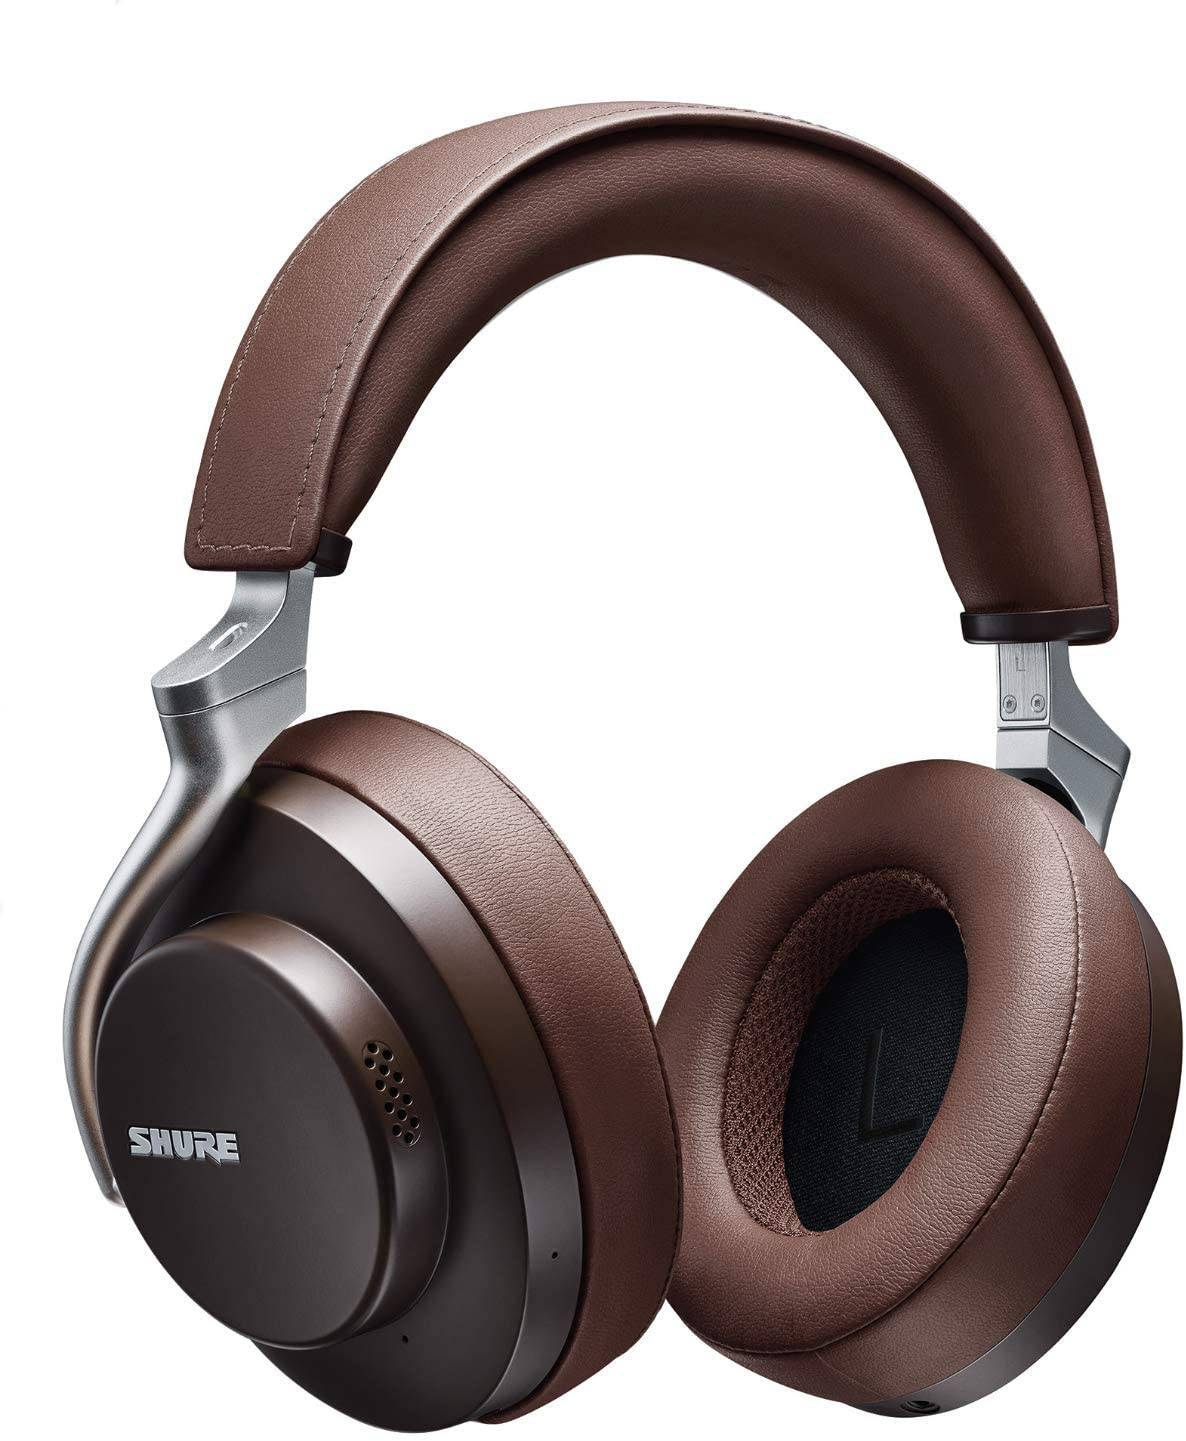 Shure AONIC 50 BR aonic 50 br